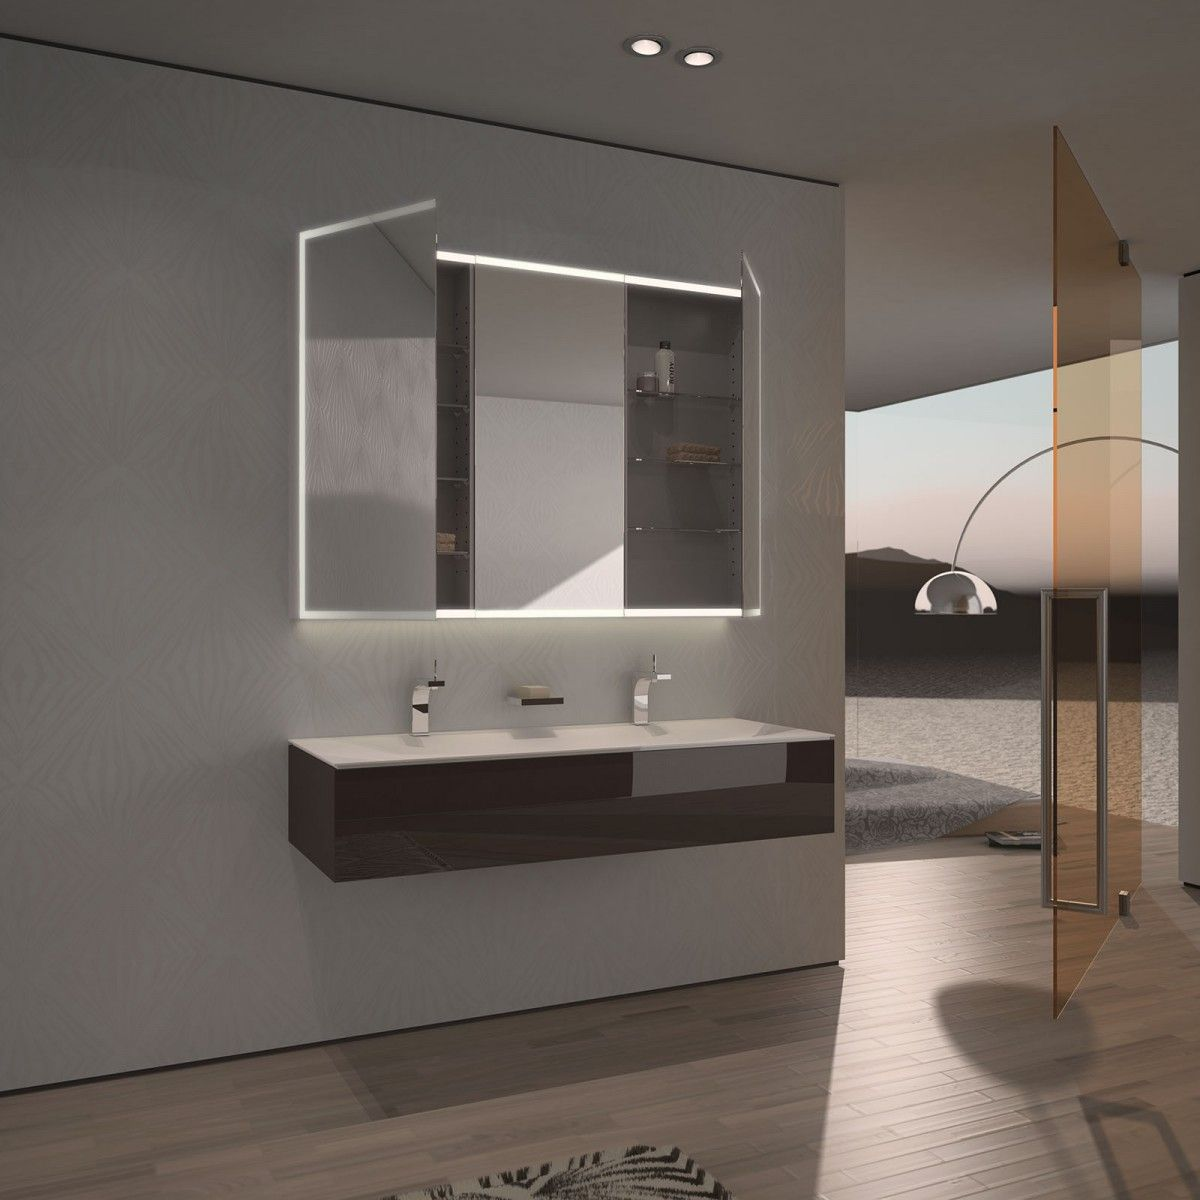 spiegelschrank nach ma mit led credo r ume pinterest spiegelschrank led und badezimmer. Black Bedroom Furniture Sets. Home Design Ideas